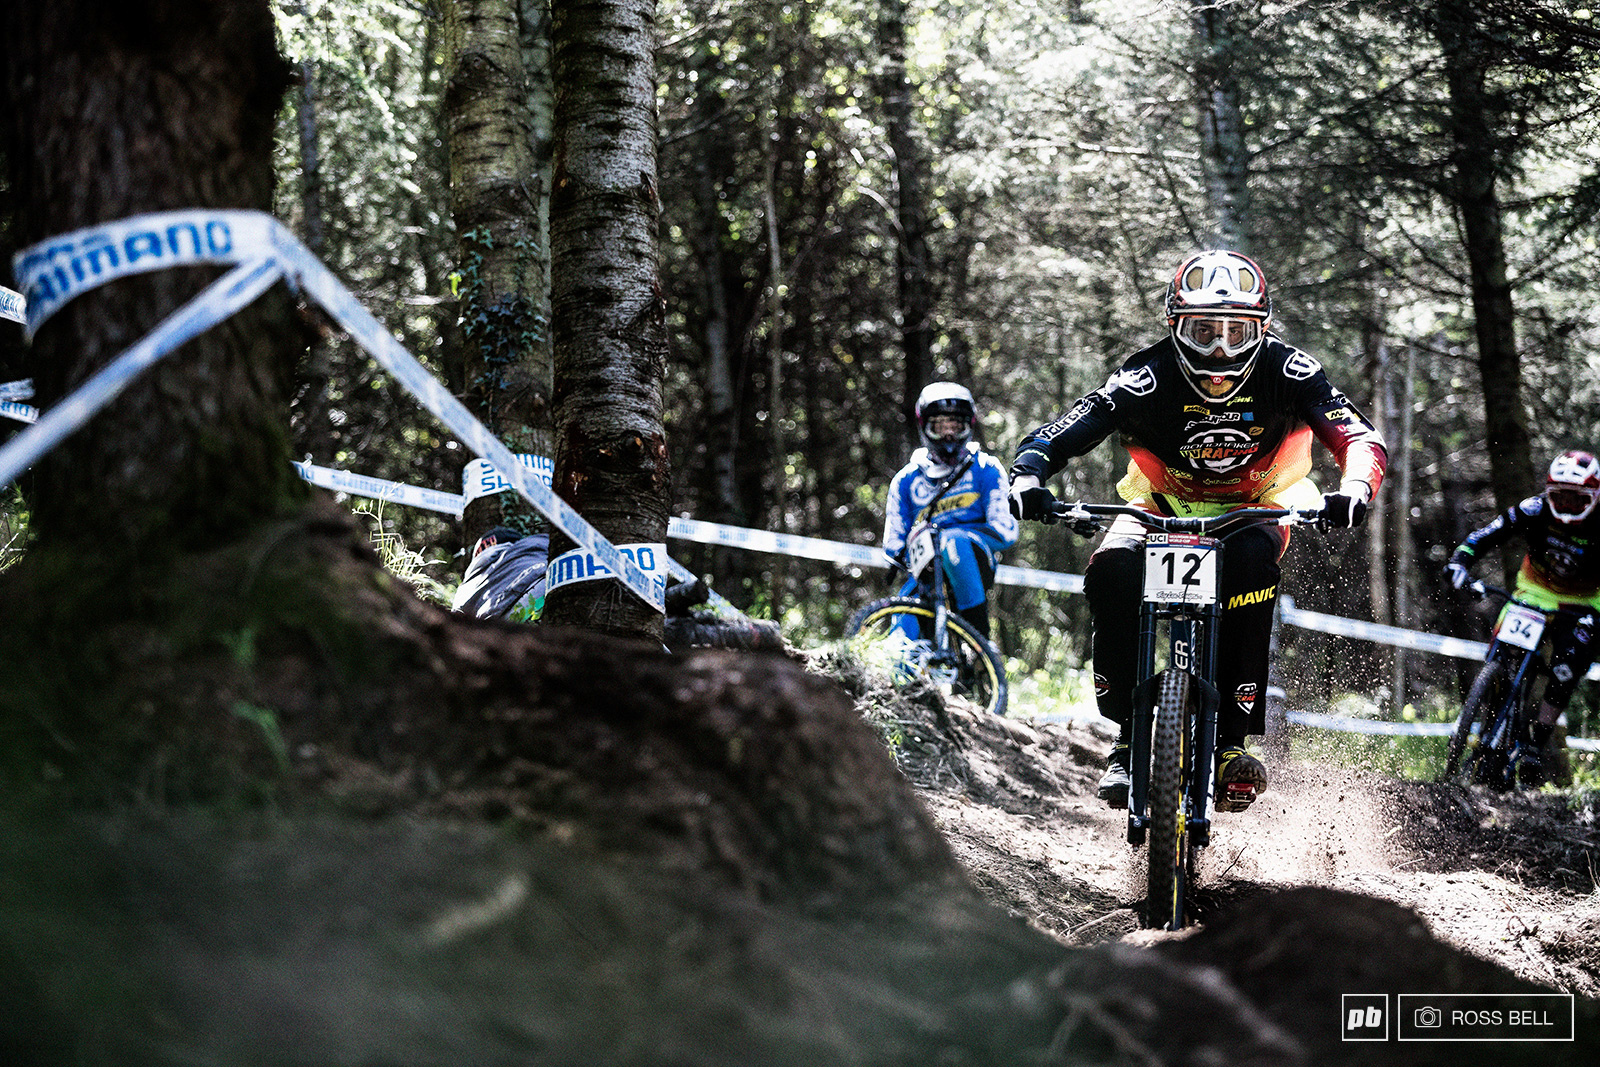 Flo Payet was a man on a mission steering his XXL Mondraker through some outrageous lines on the hillside.